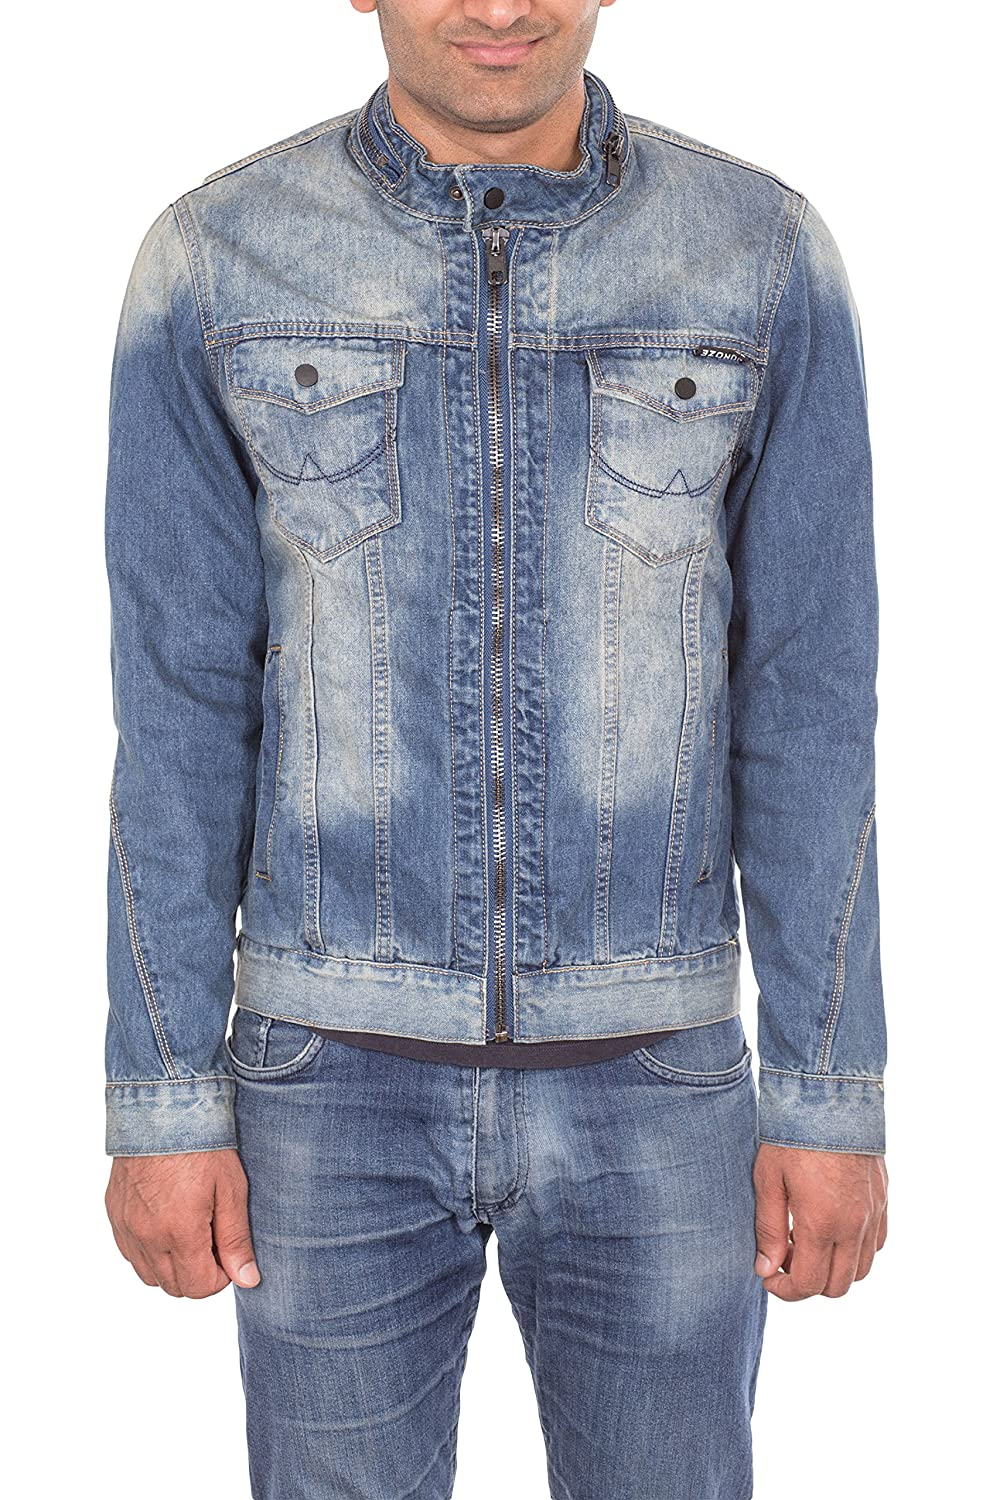 Noroze Mens Washed Denim Trucker Jacket